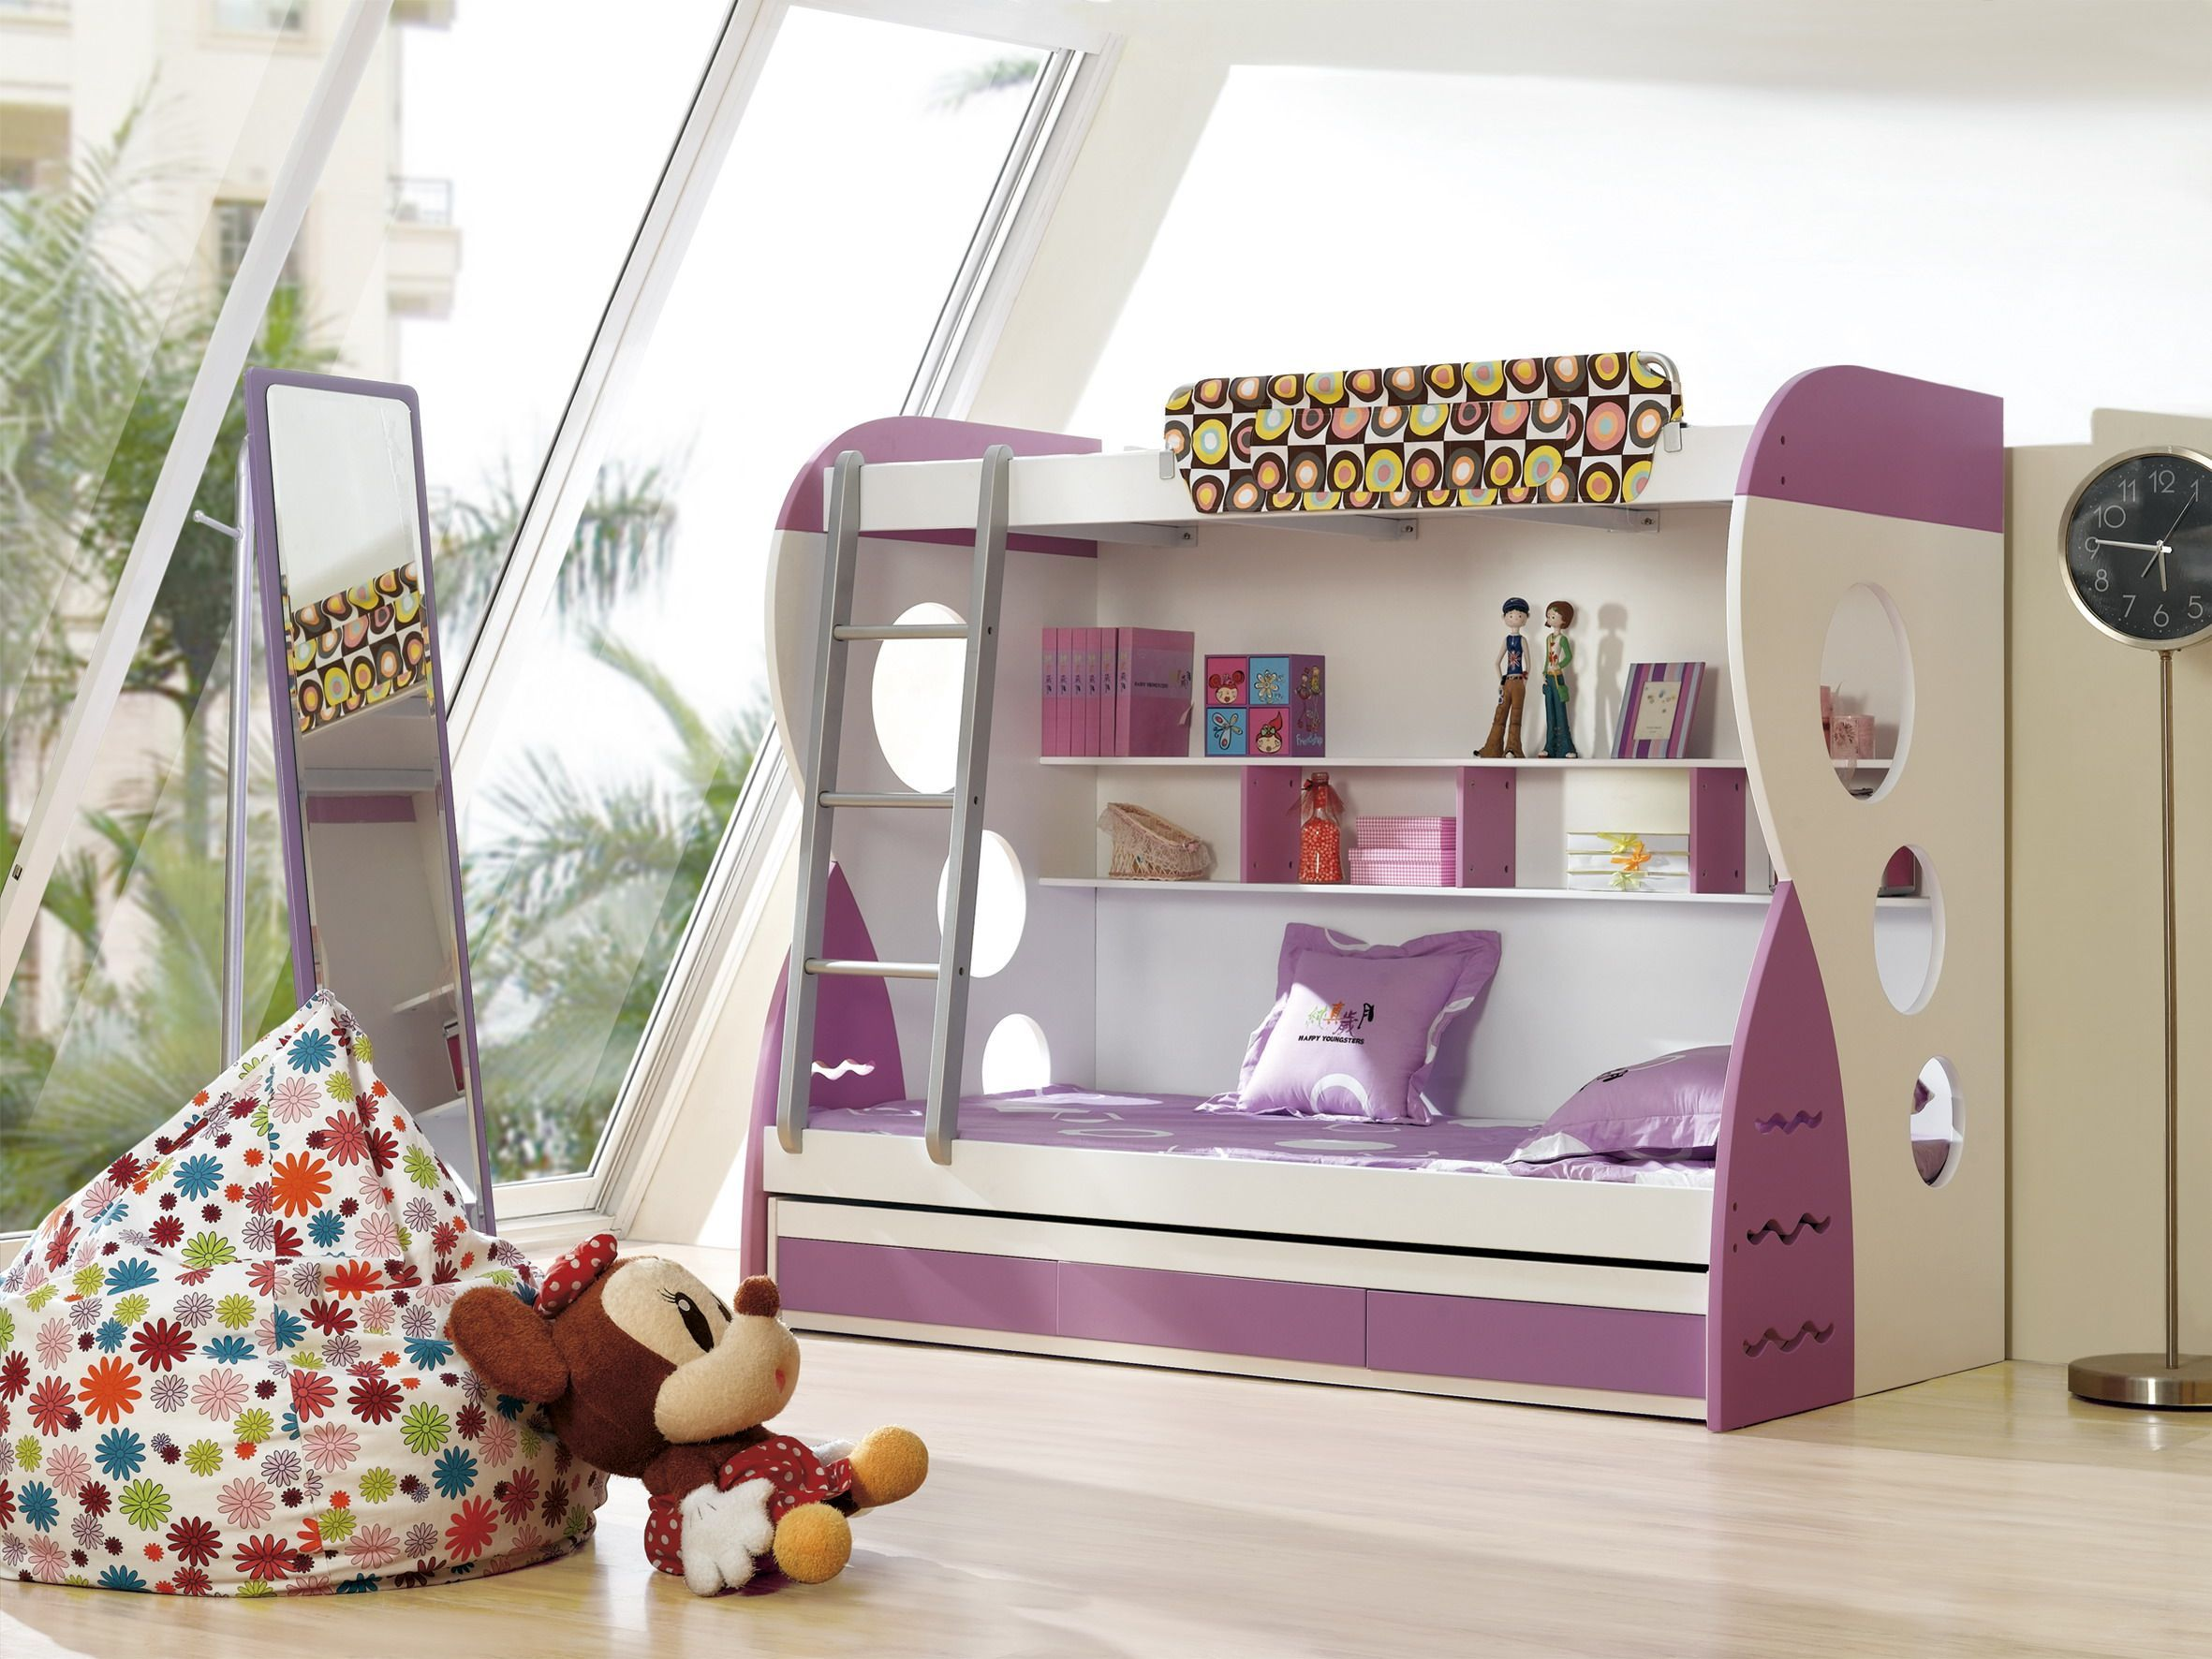 Cool Bedrooms With Bunk Beds For Girls   For More Awesome Bunk Bed Ideas  Take A